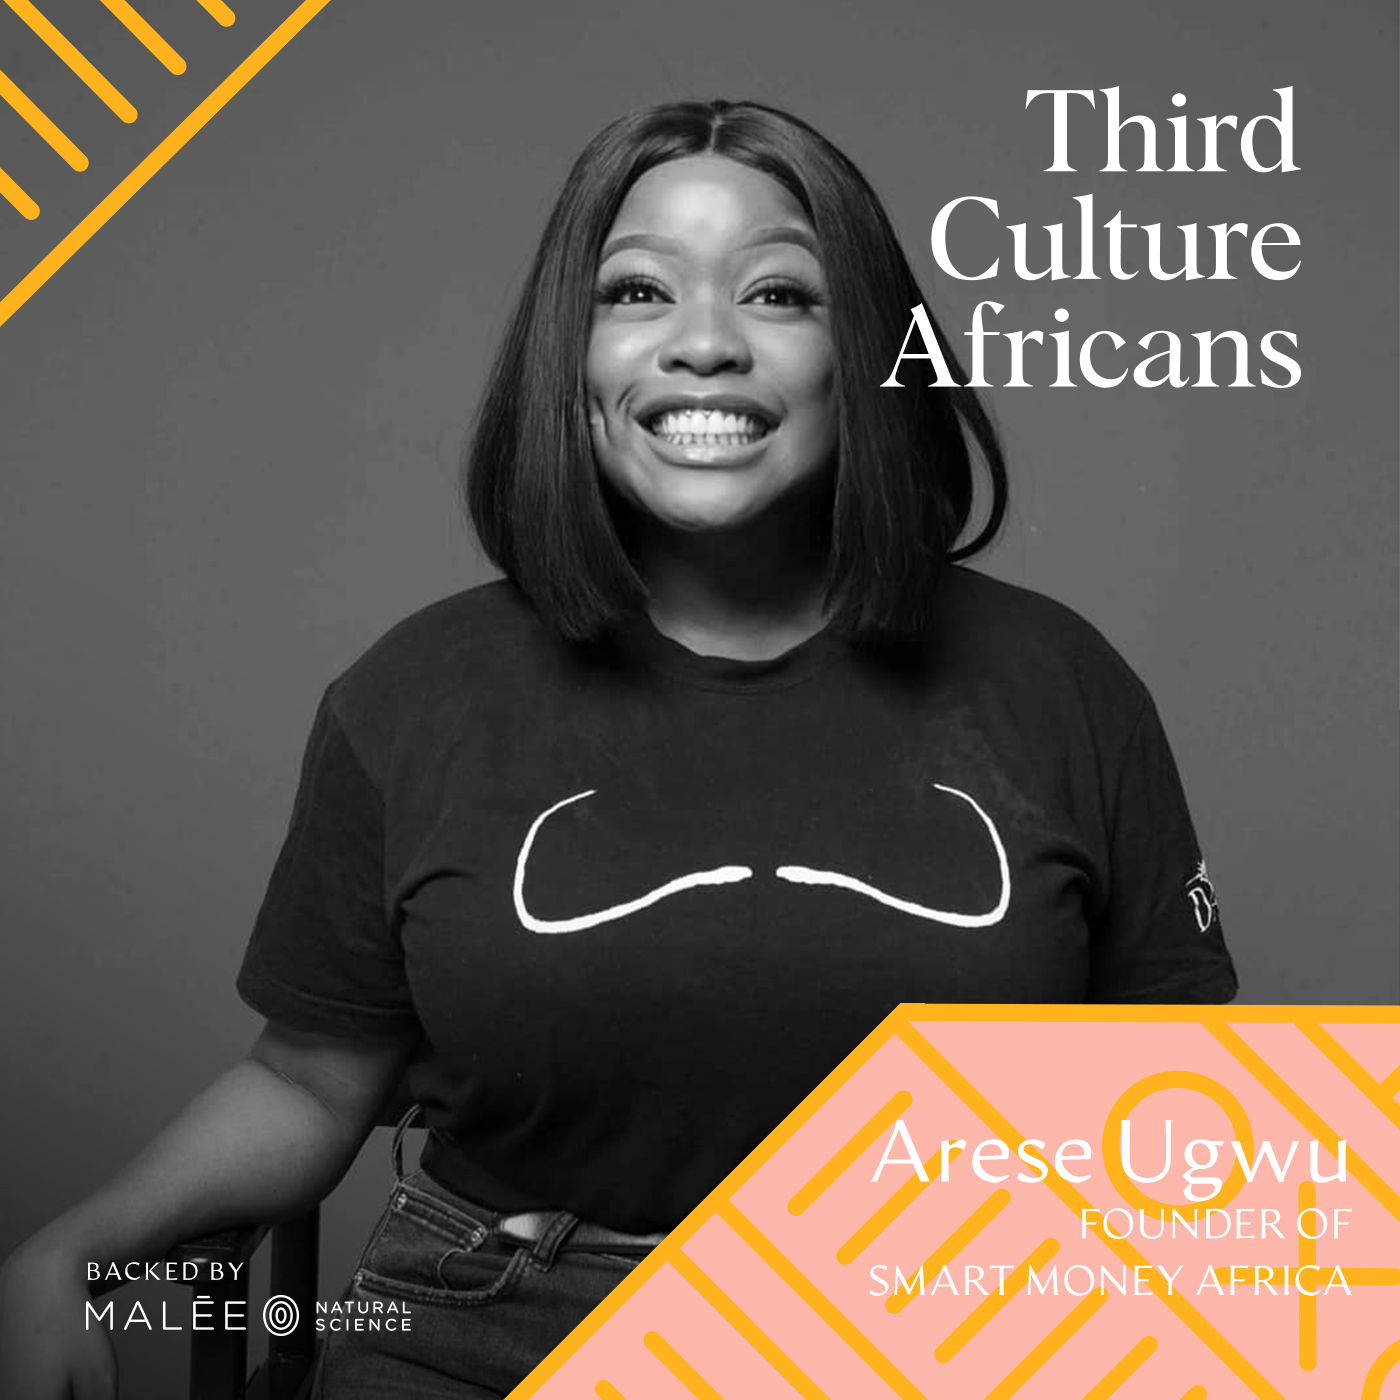 Arese Ugwu is the founder of Smart Money Africa, a personal finance platform targeting millennial Africans, with a mission to educate all Africans about financial literacy.